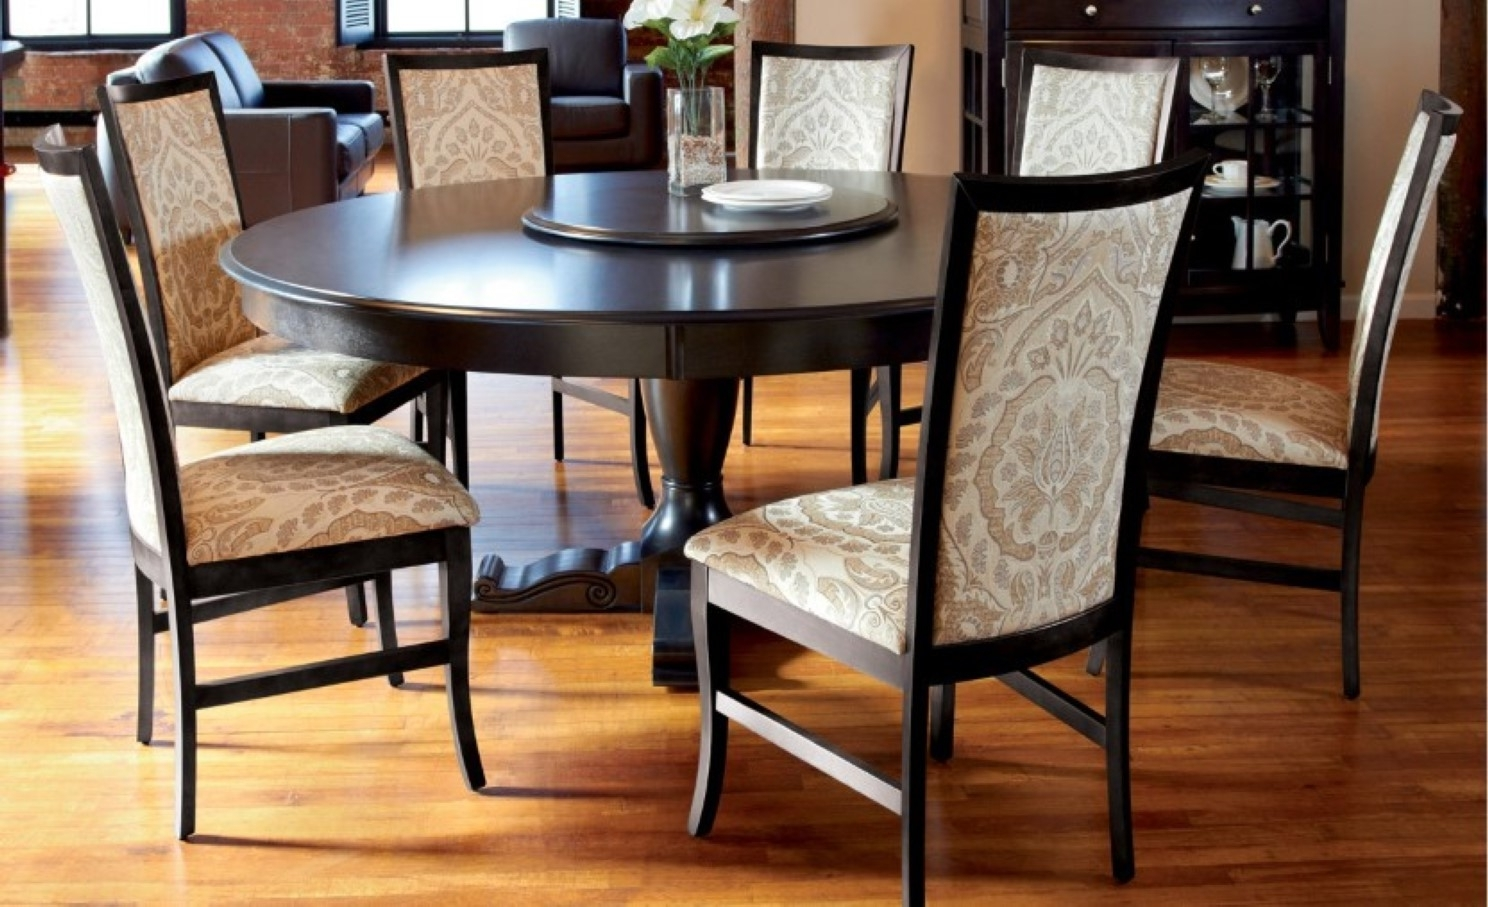 Homesfeed Within Most Up To Date Dining Tables For Six (Gallery 11 of 25)